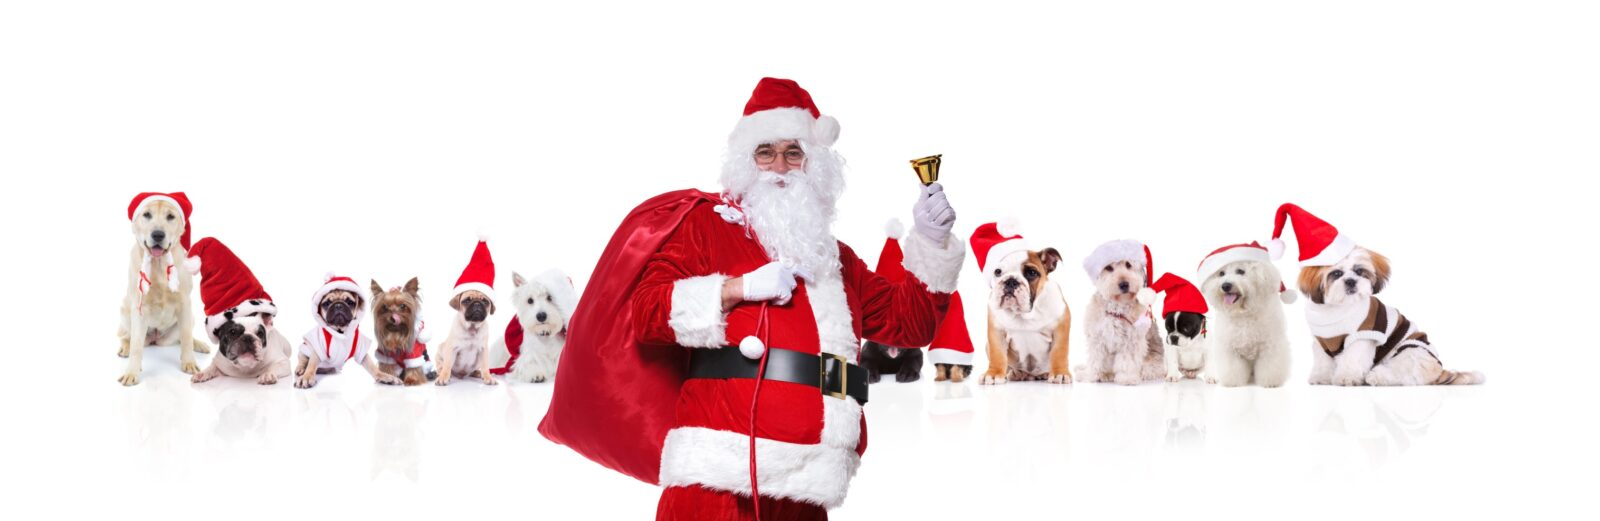 Santa , Bag of Toys, Dogs wearing Santa hats, Cats wearing Santa hats, Santa Suit, Bell